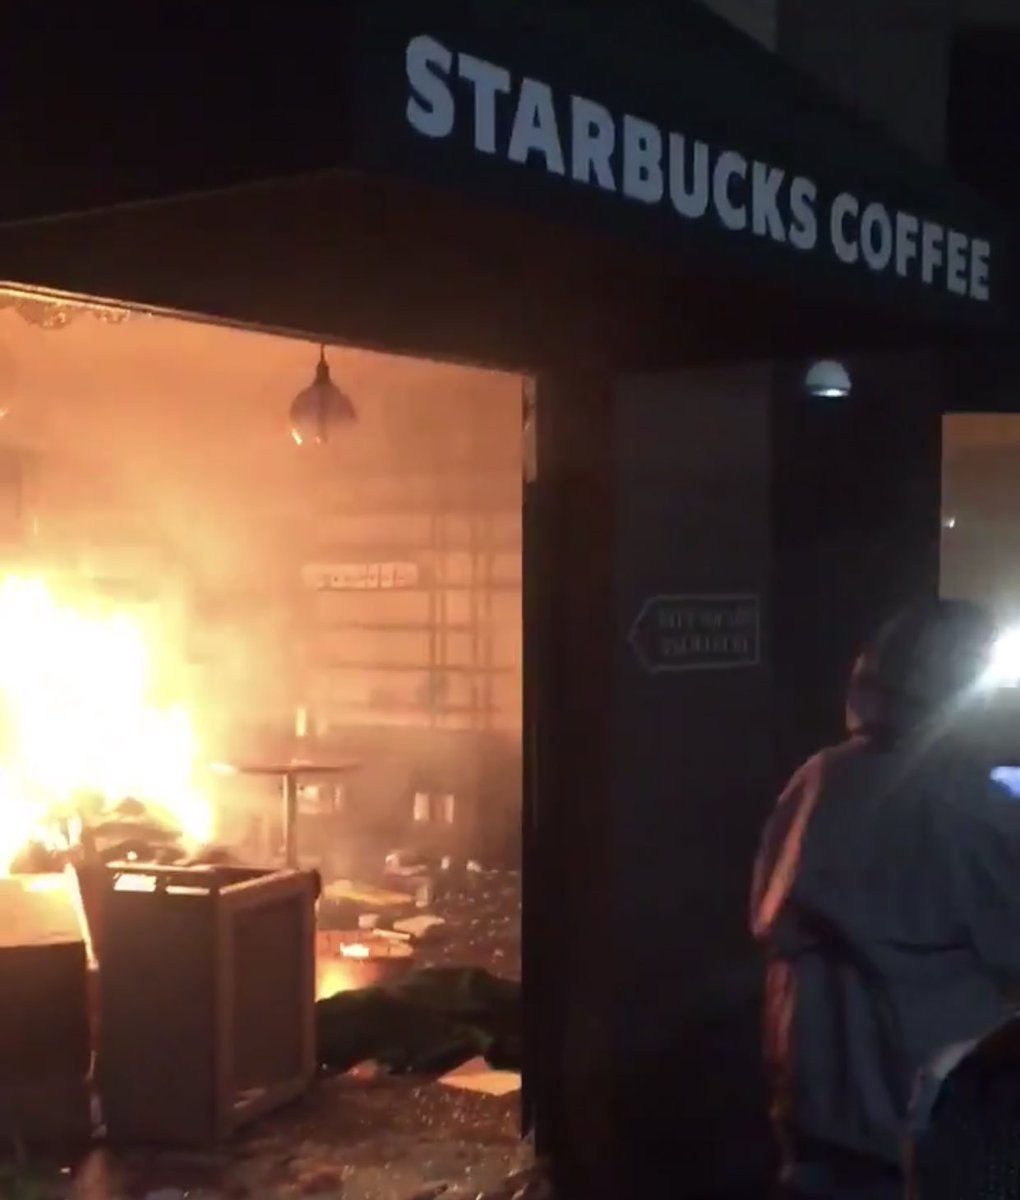 #Starbucks on fire in #Seattle due to protest in the US. stay safepic.twitter.com/h9b4RbO8oR